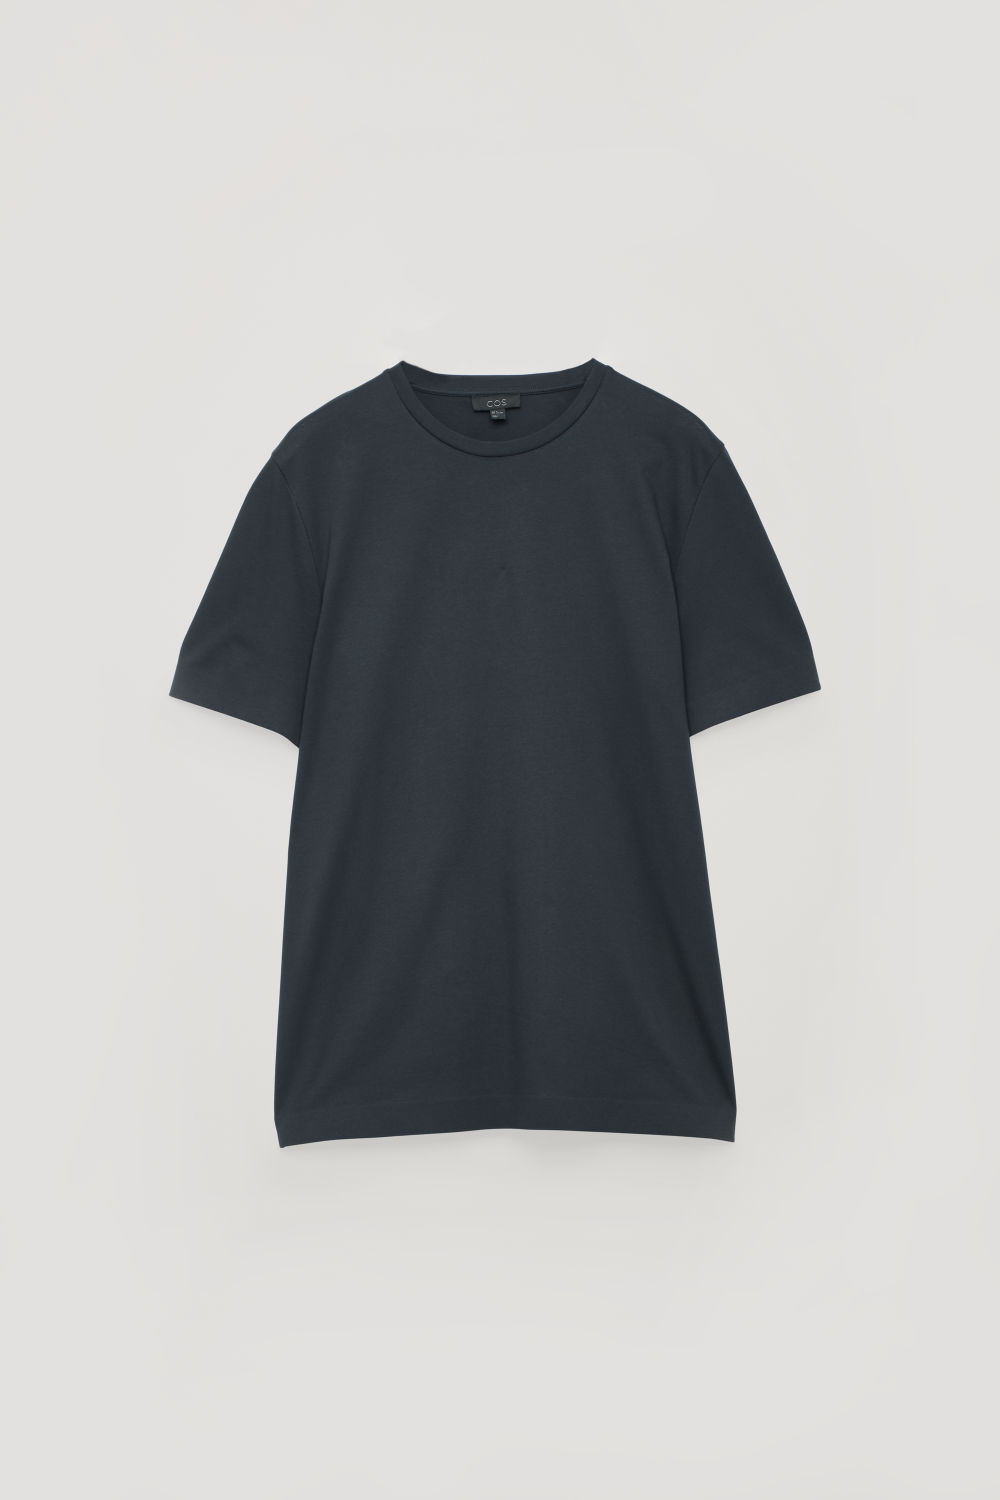 BONDED COTTON T-SHIRT